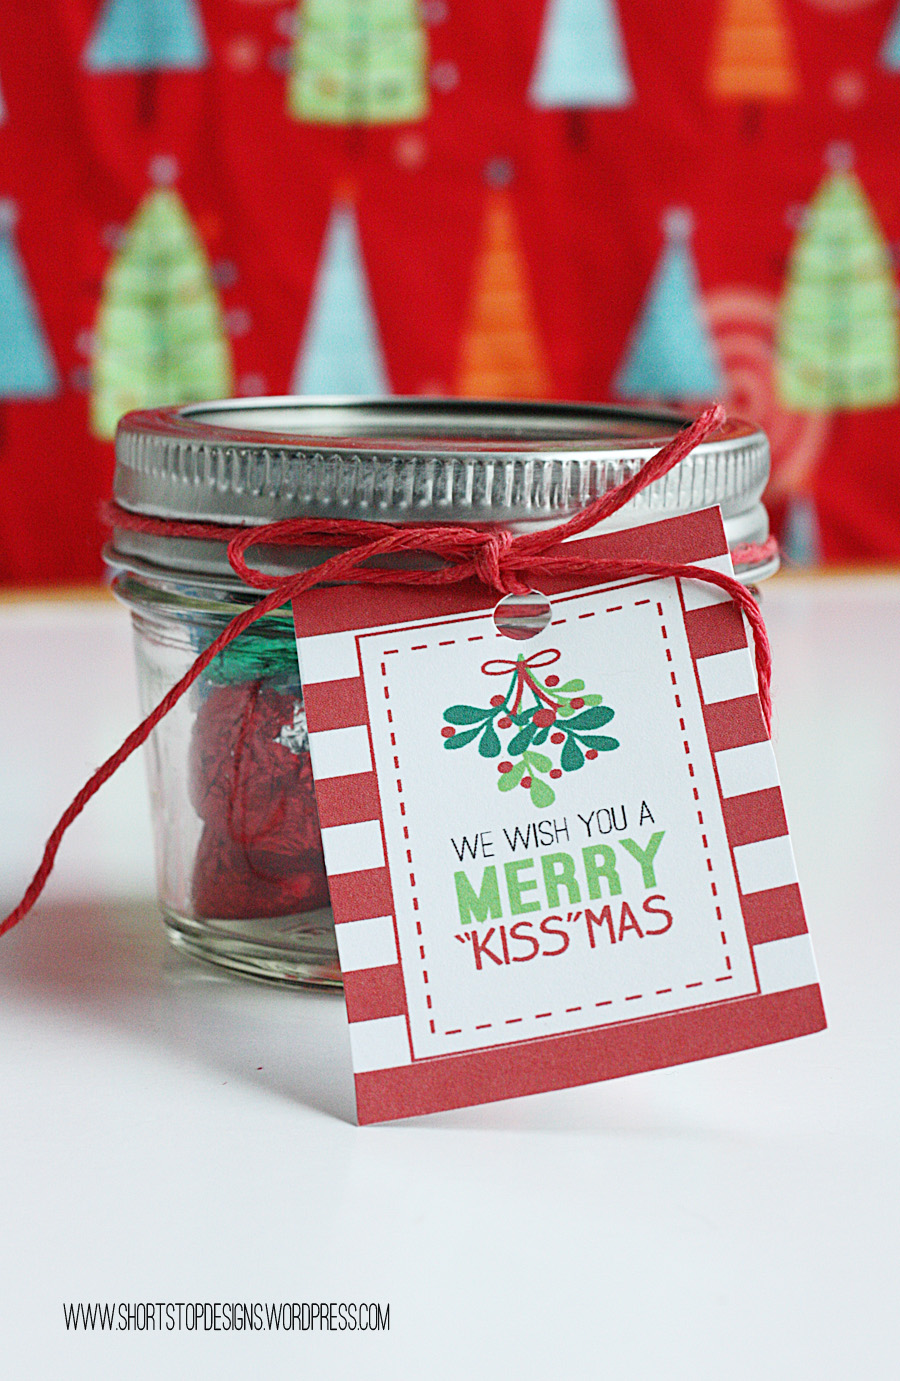 Calendar Time Printables : Christmas candy gift tags short stop designs